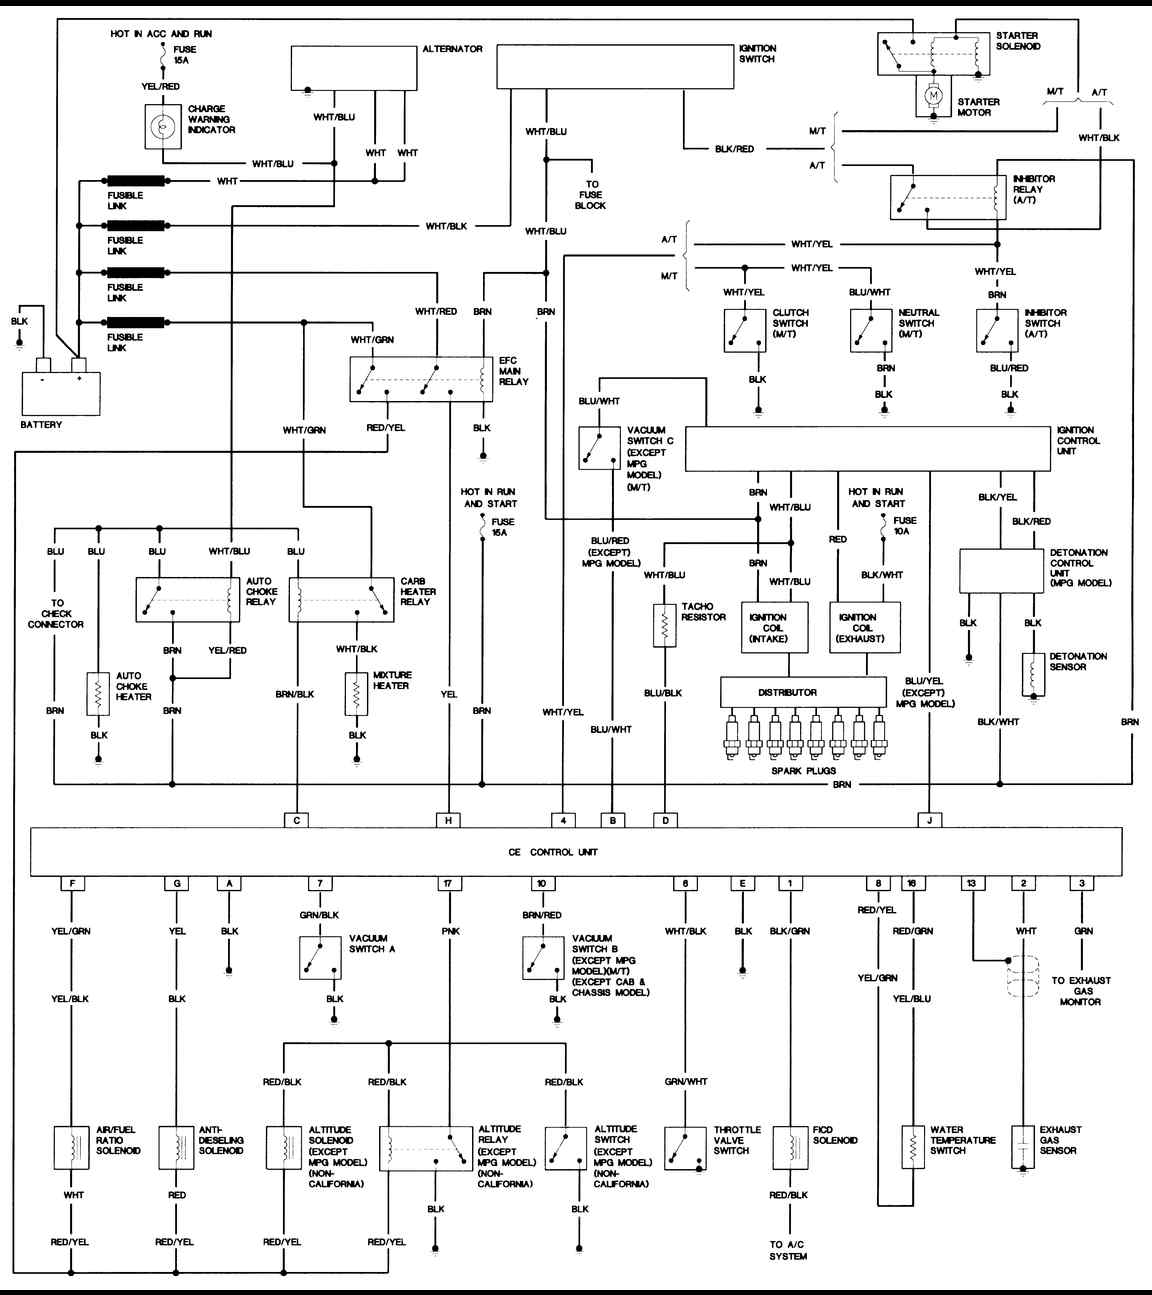 1984 Nissan Pickup Wiring Diagram Opinions About 1992 Ford Ranger 2 3l Engine Vacuum Diagrams 720 Schematics U2022 Rh Schoosretailstores Com 86